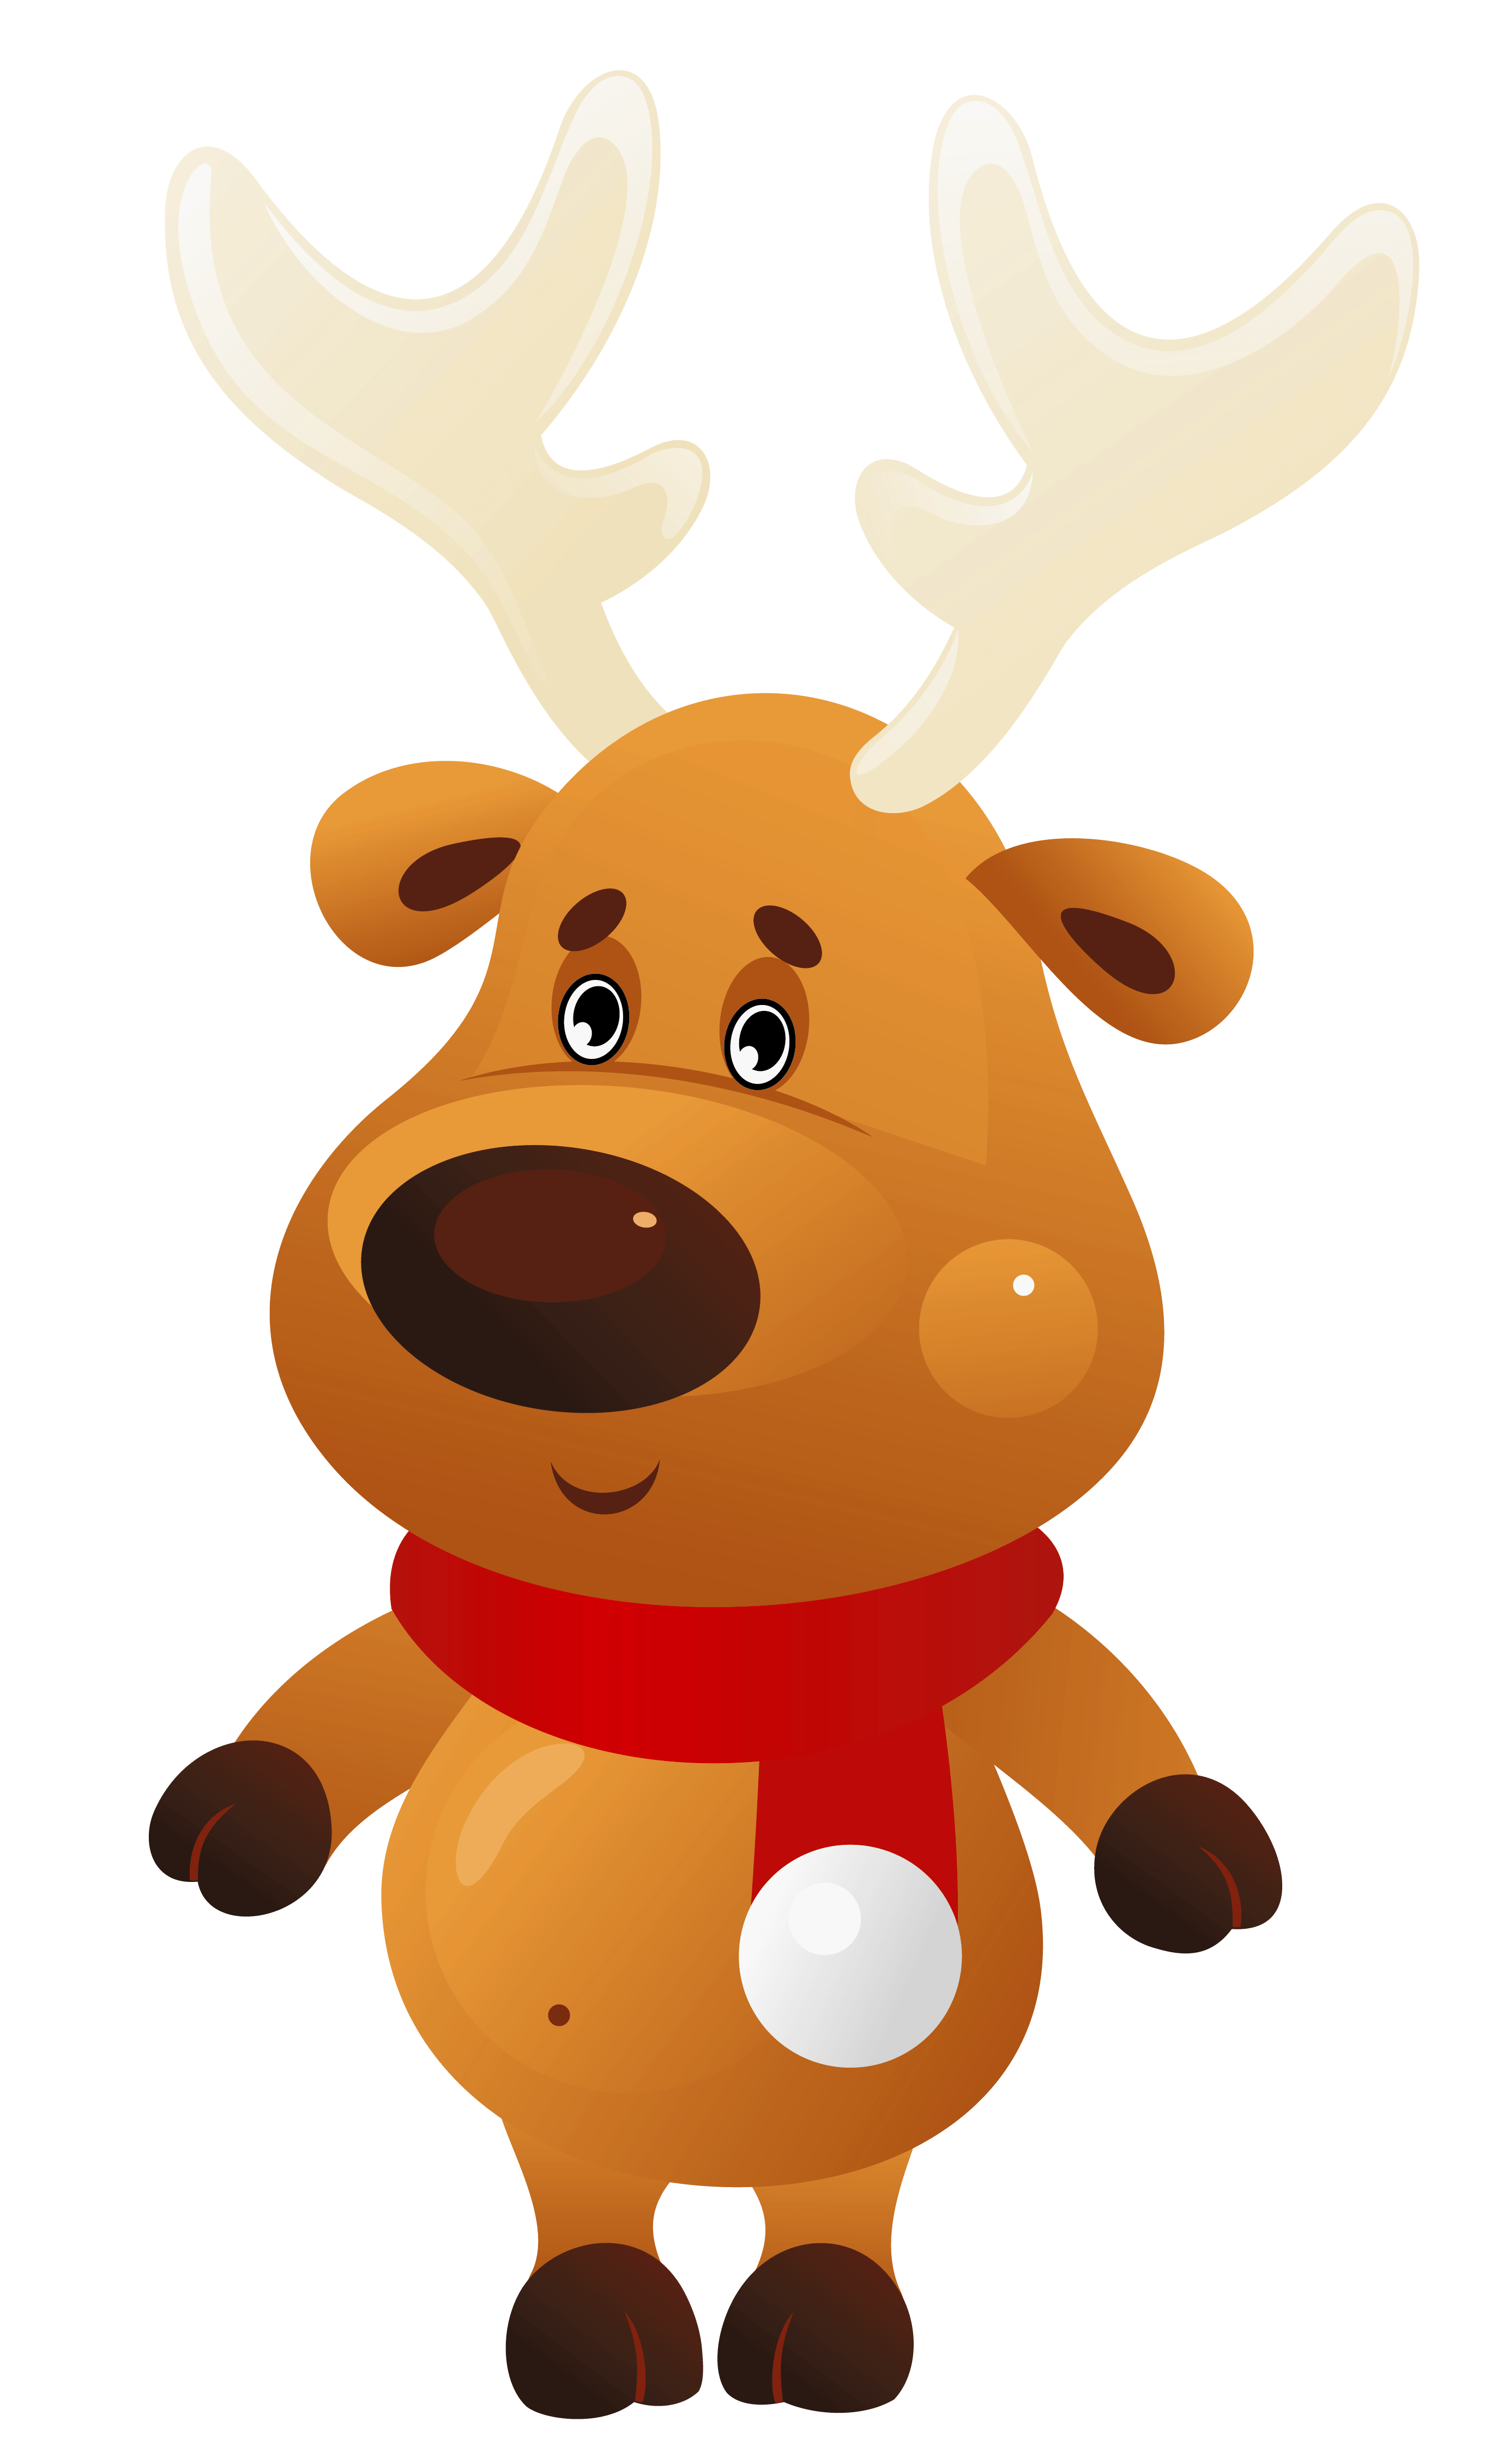 Christmas antlers png. Cute reindeer with red